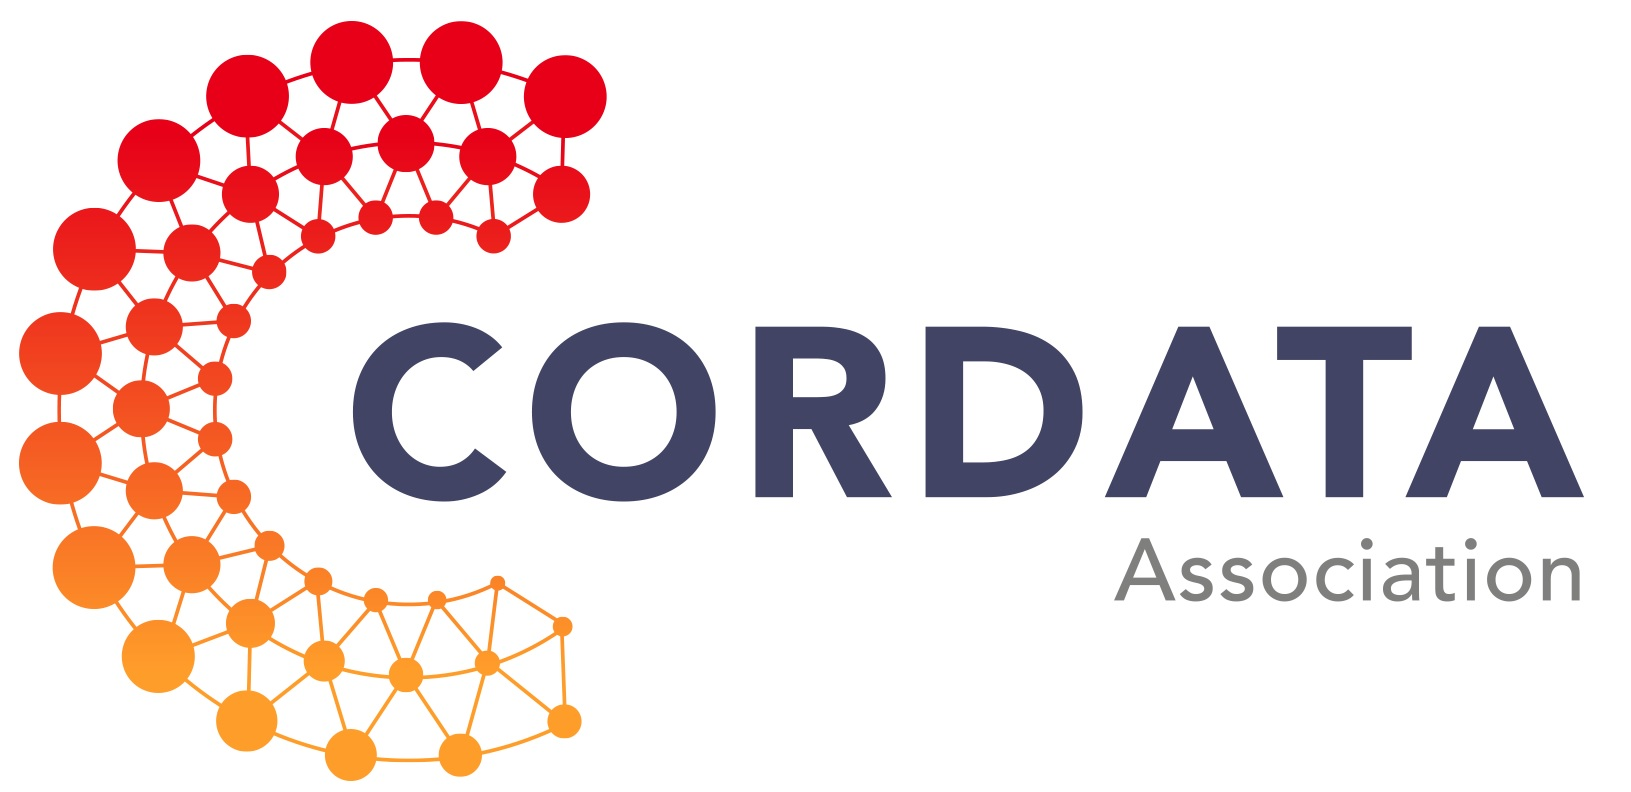 Swiss Cordata Association sets up international blockchain laboratory to support the development of cross-chain ecosystems